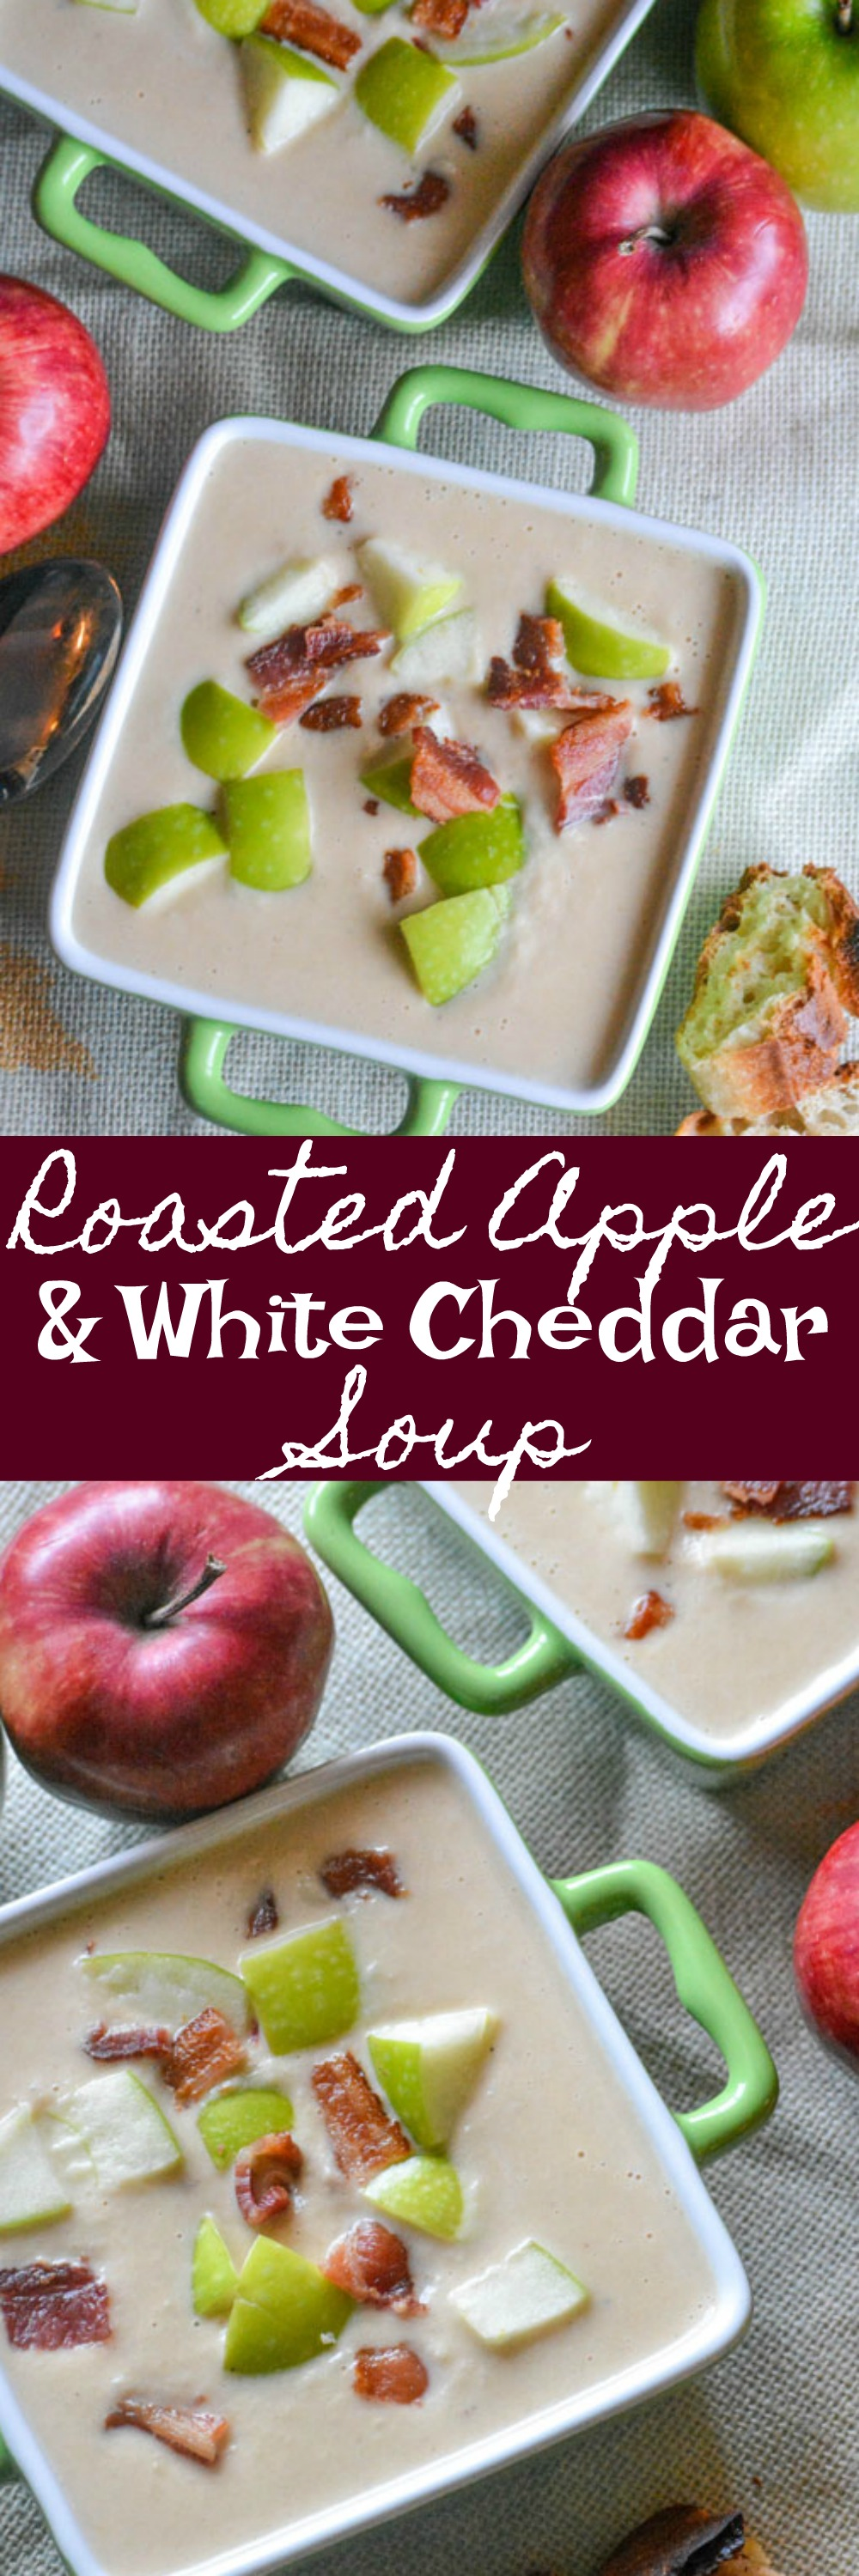 Soup may not be on everyone's must make list as soon as Fall rolls around, but apple recipes usually are. Combine the two by going with the classic sweet & savory pairing in this Roasted Apple & White Cheddar Soup. It's a new way to throw all your favorite seasonal flavors into one perfect dish.